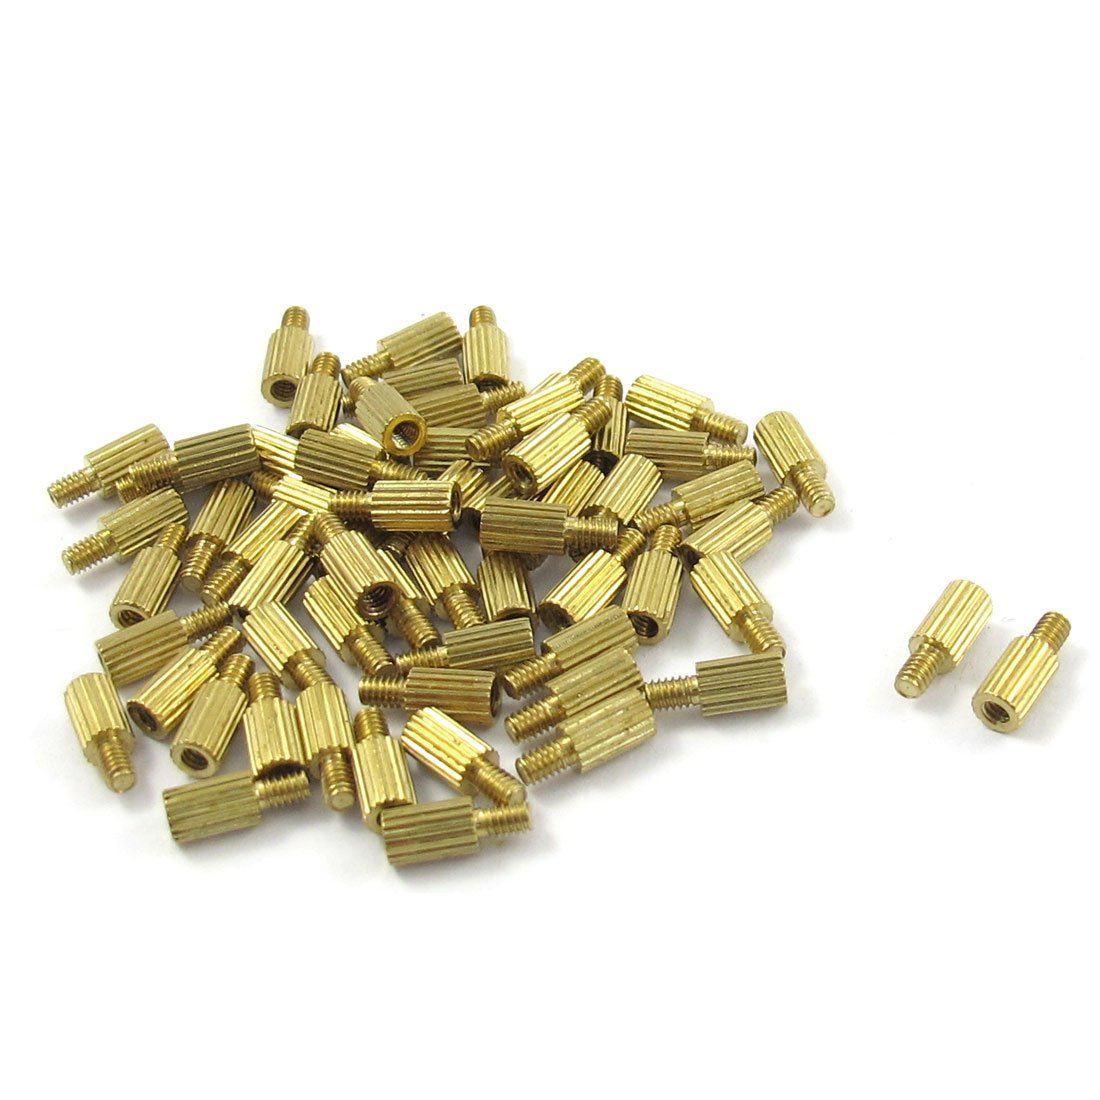 CLOS 50 Pcs Male to Female Thread Brass Pillars Standoff Spacer M2x5mmx8mm m2 3 3 1pcs brass standoff 3mm spacer standard male female brass standoffs metric thread column high quality 1 piece sale